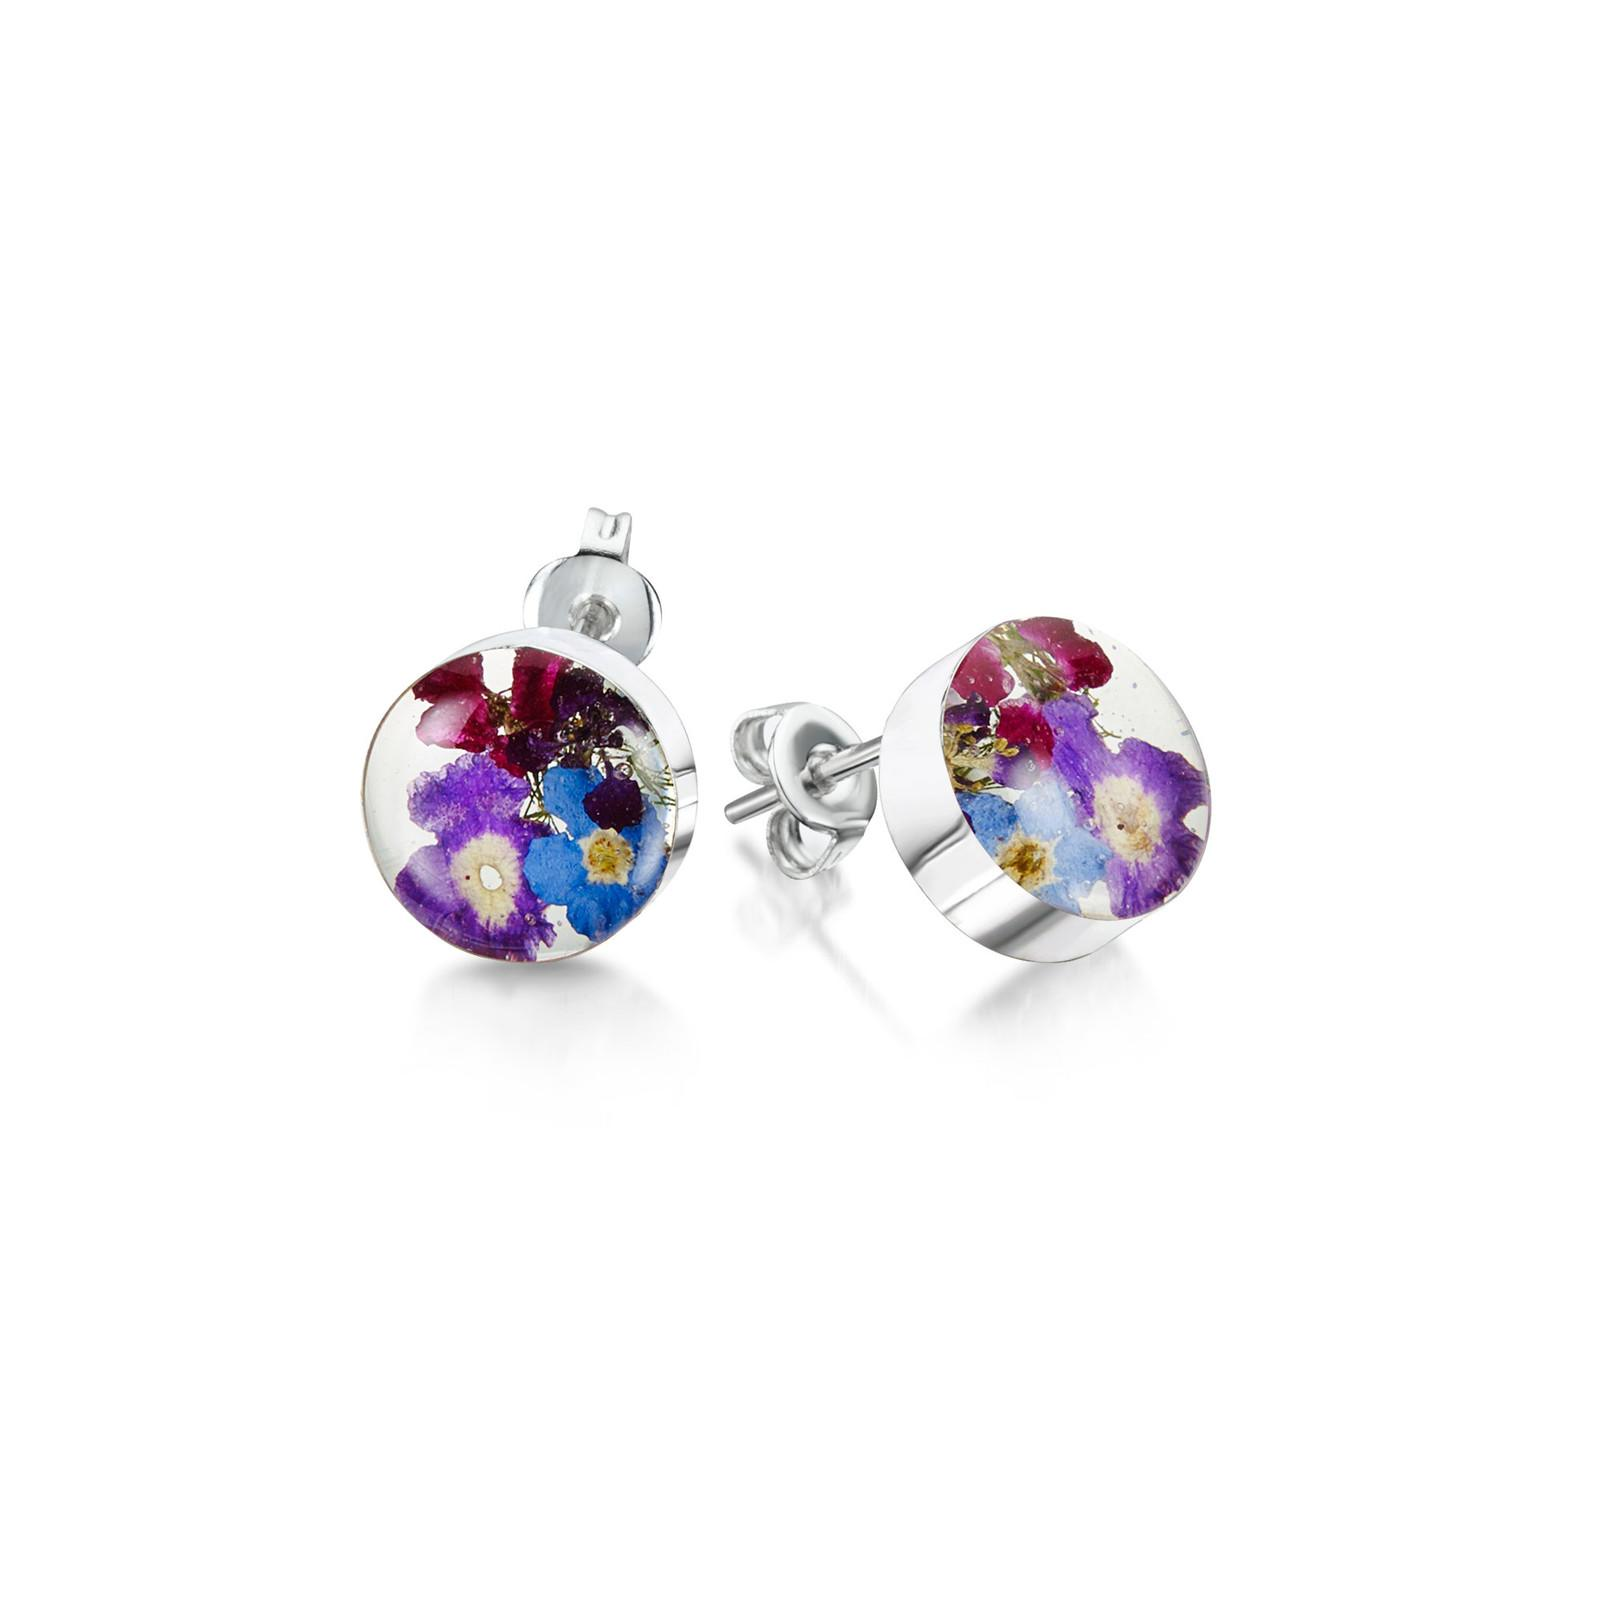 PURPLE HAZE STUD EARRINGS